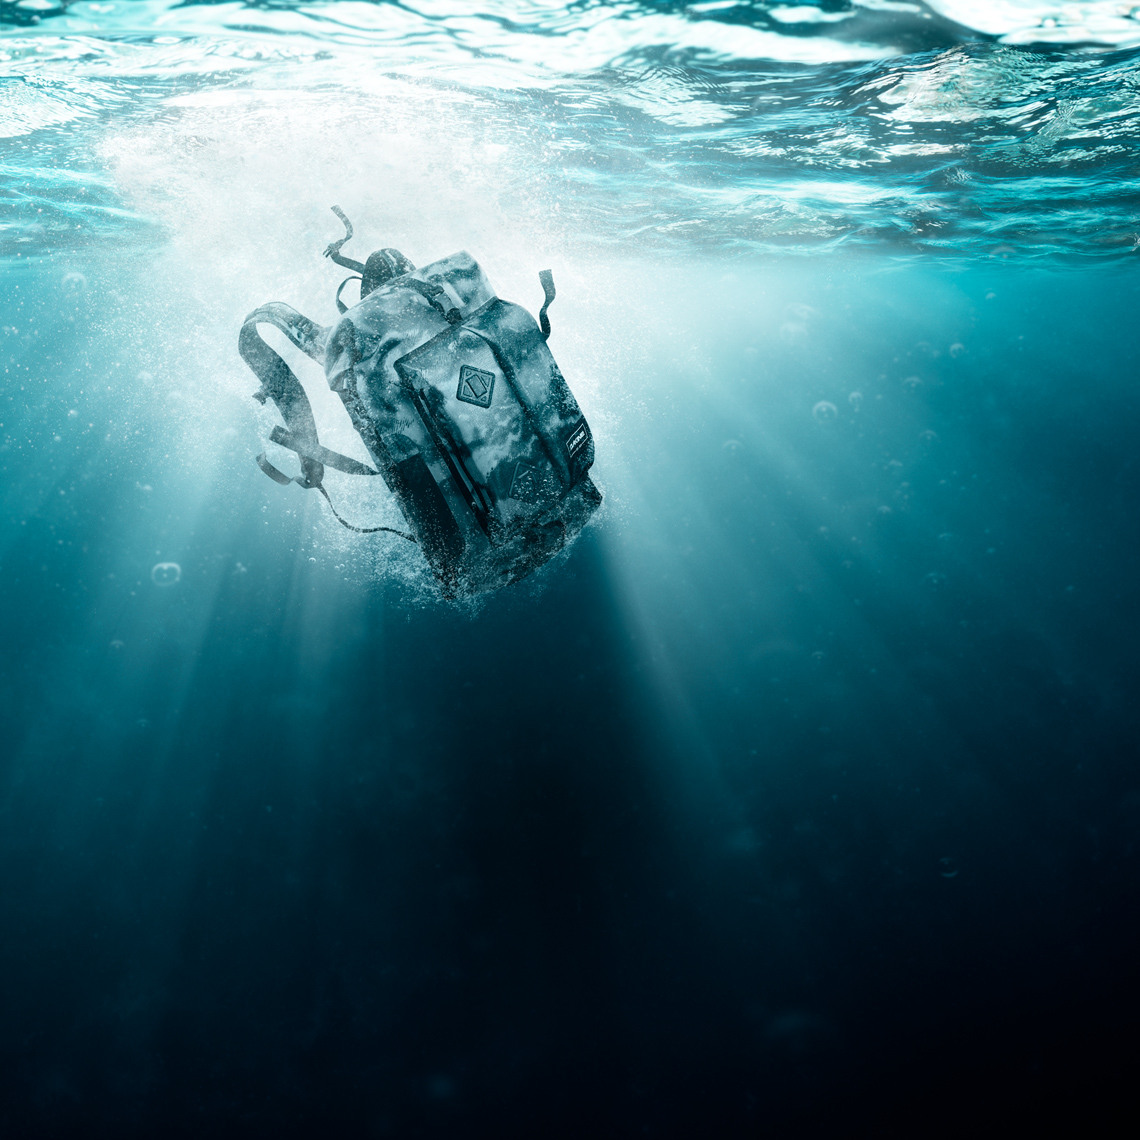 Dakine Drypack backpack splashing underwater image composite